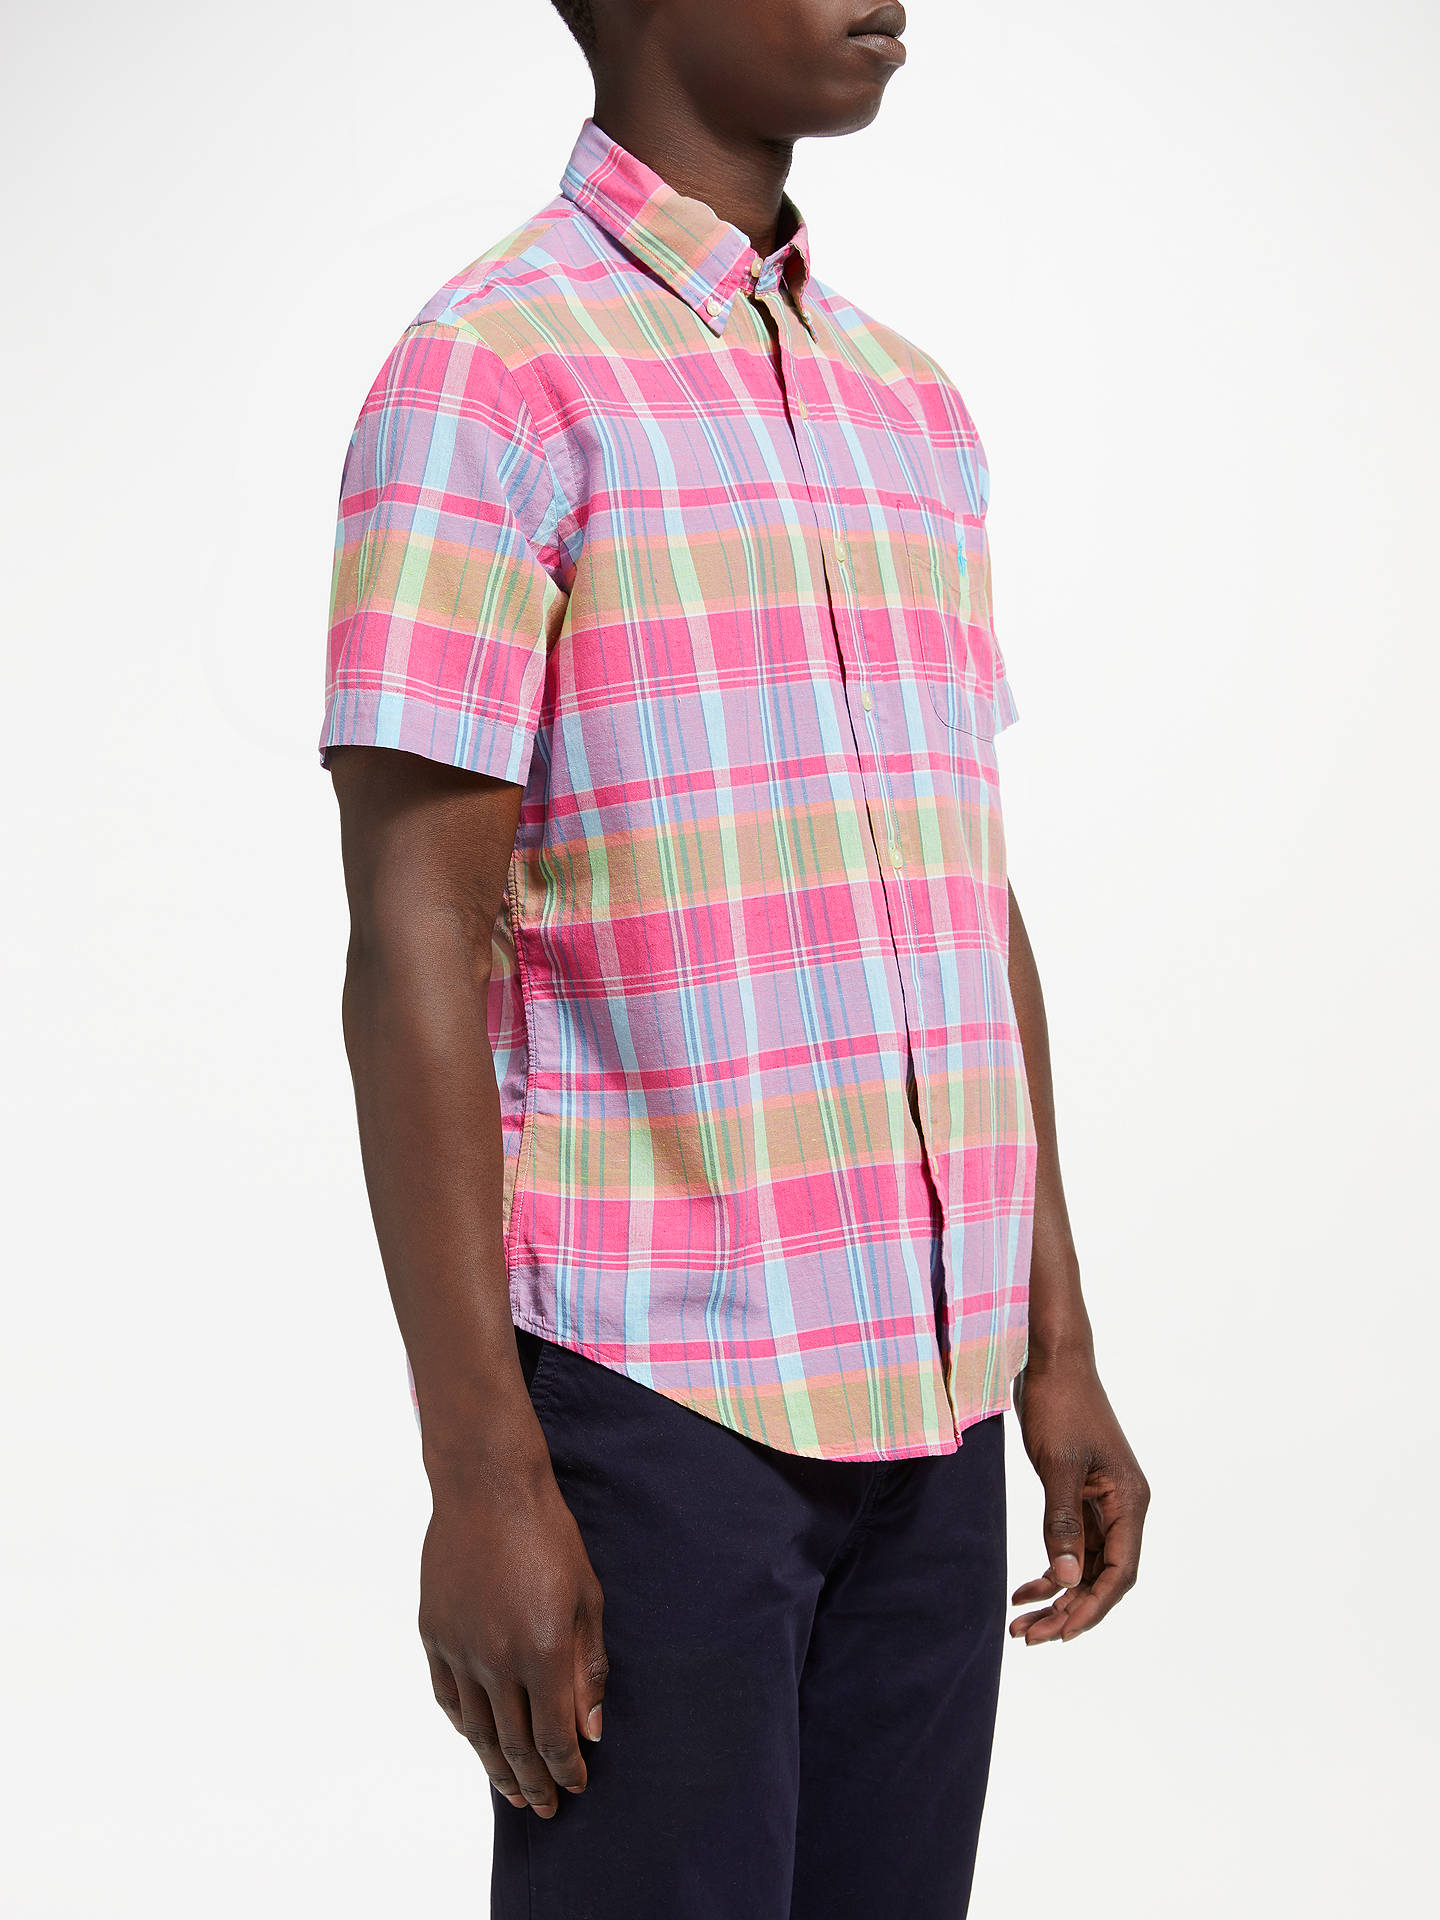 BuyPolo Ralph Lauren Madras Short Sleeve Check Shirt, Magenta/Blue, S Online at johnlewis.com